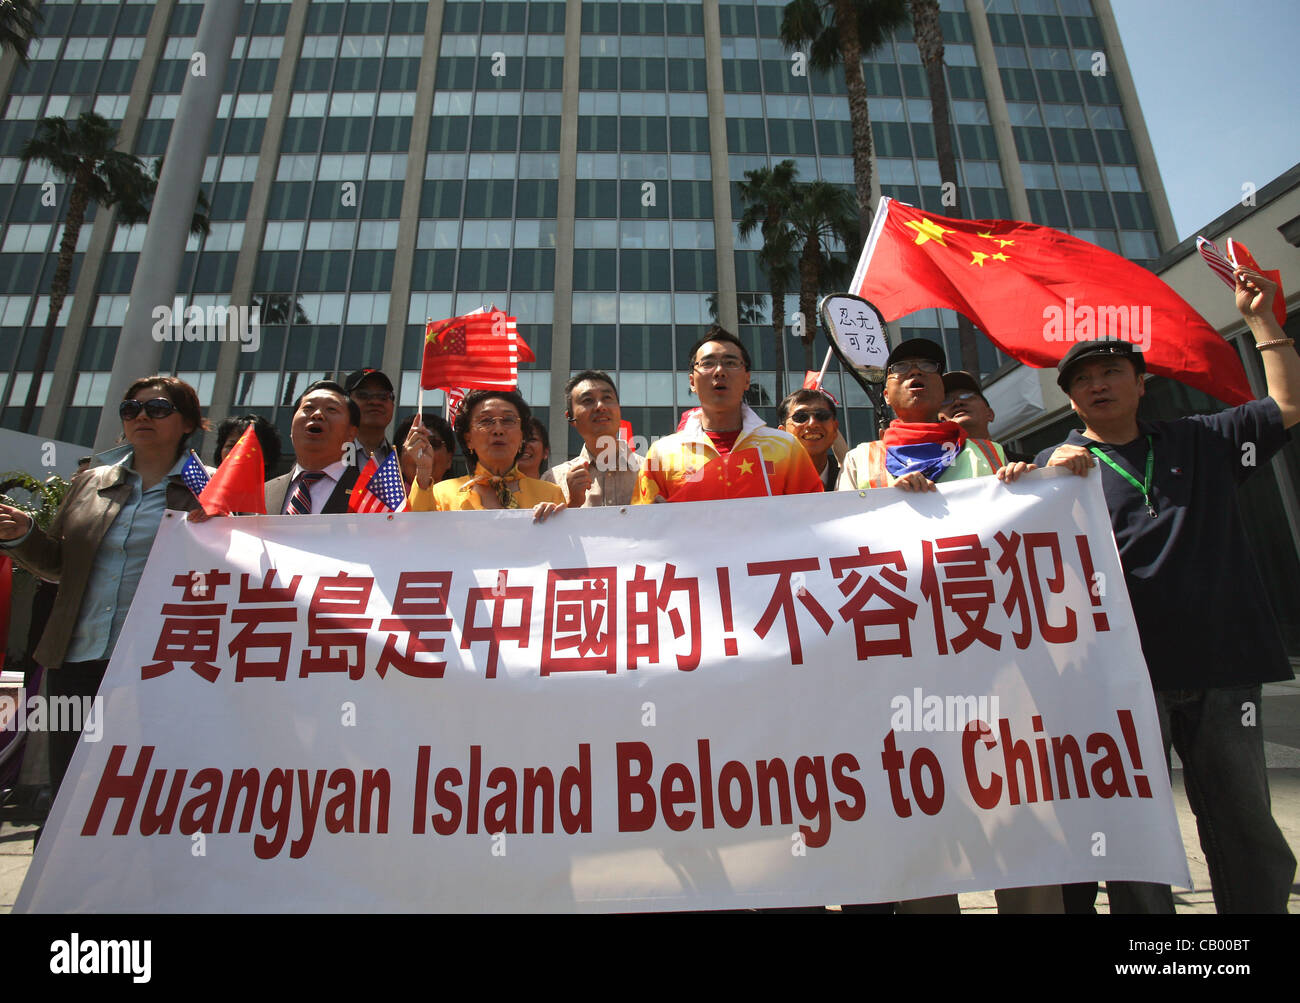 May 11, 2012 - Los Angeles, California, U.S. - A Group of Chinese take part in a demonstration in front of the Philippines - Stock Image